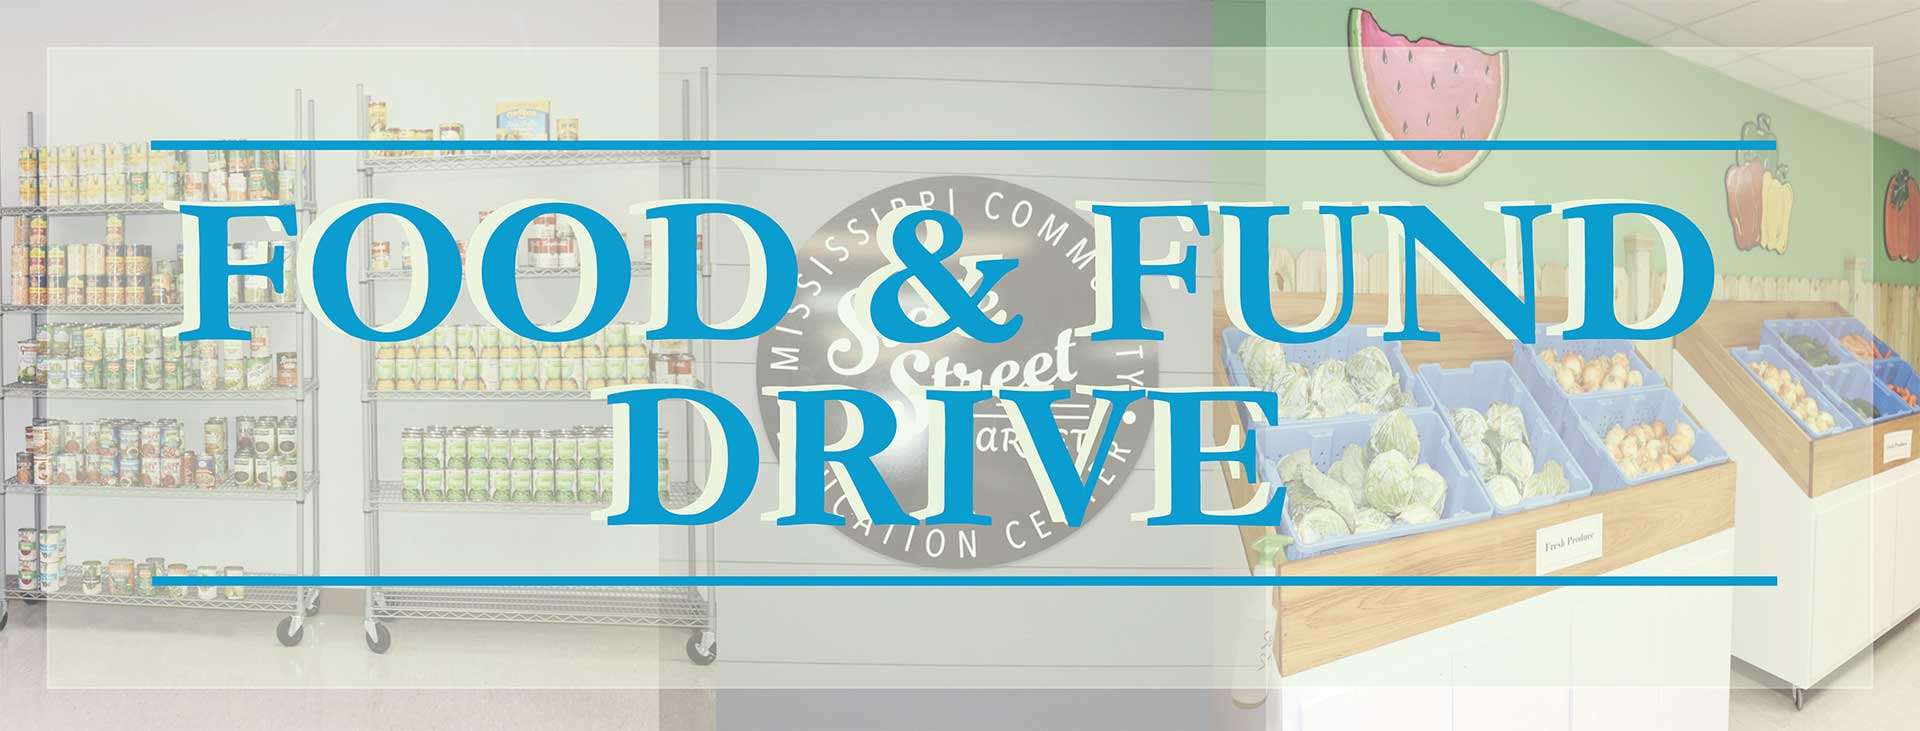 Food & Fund Drive